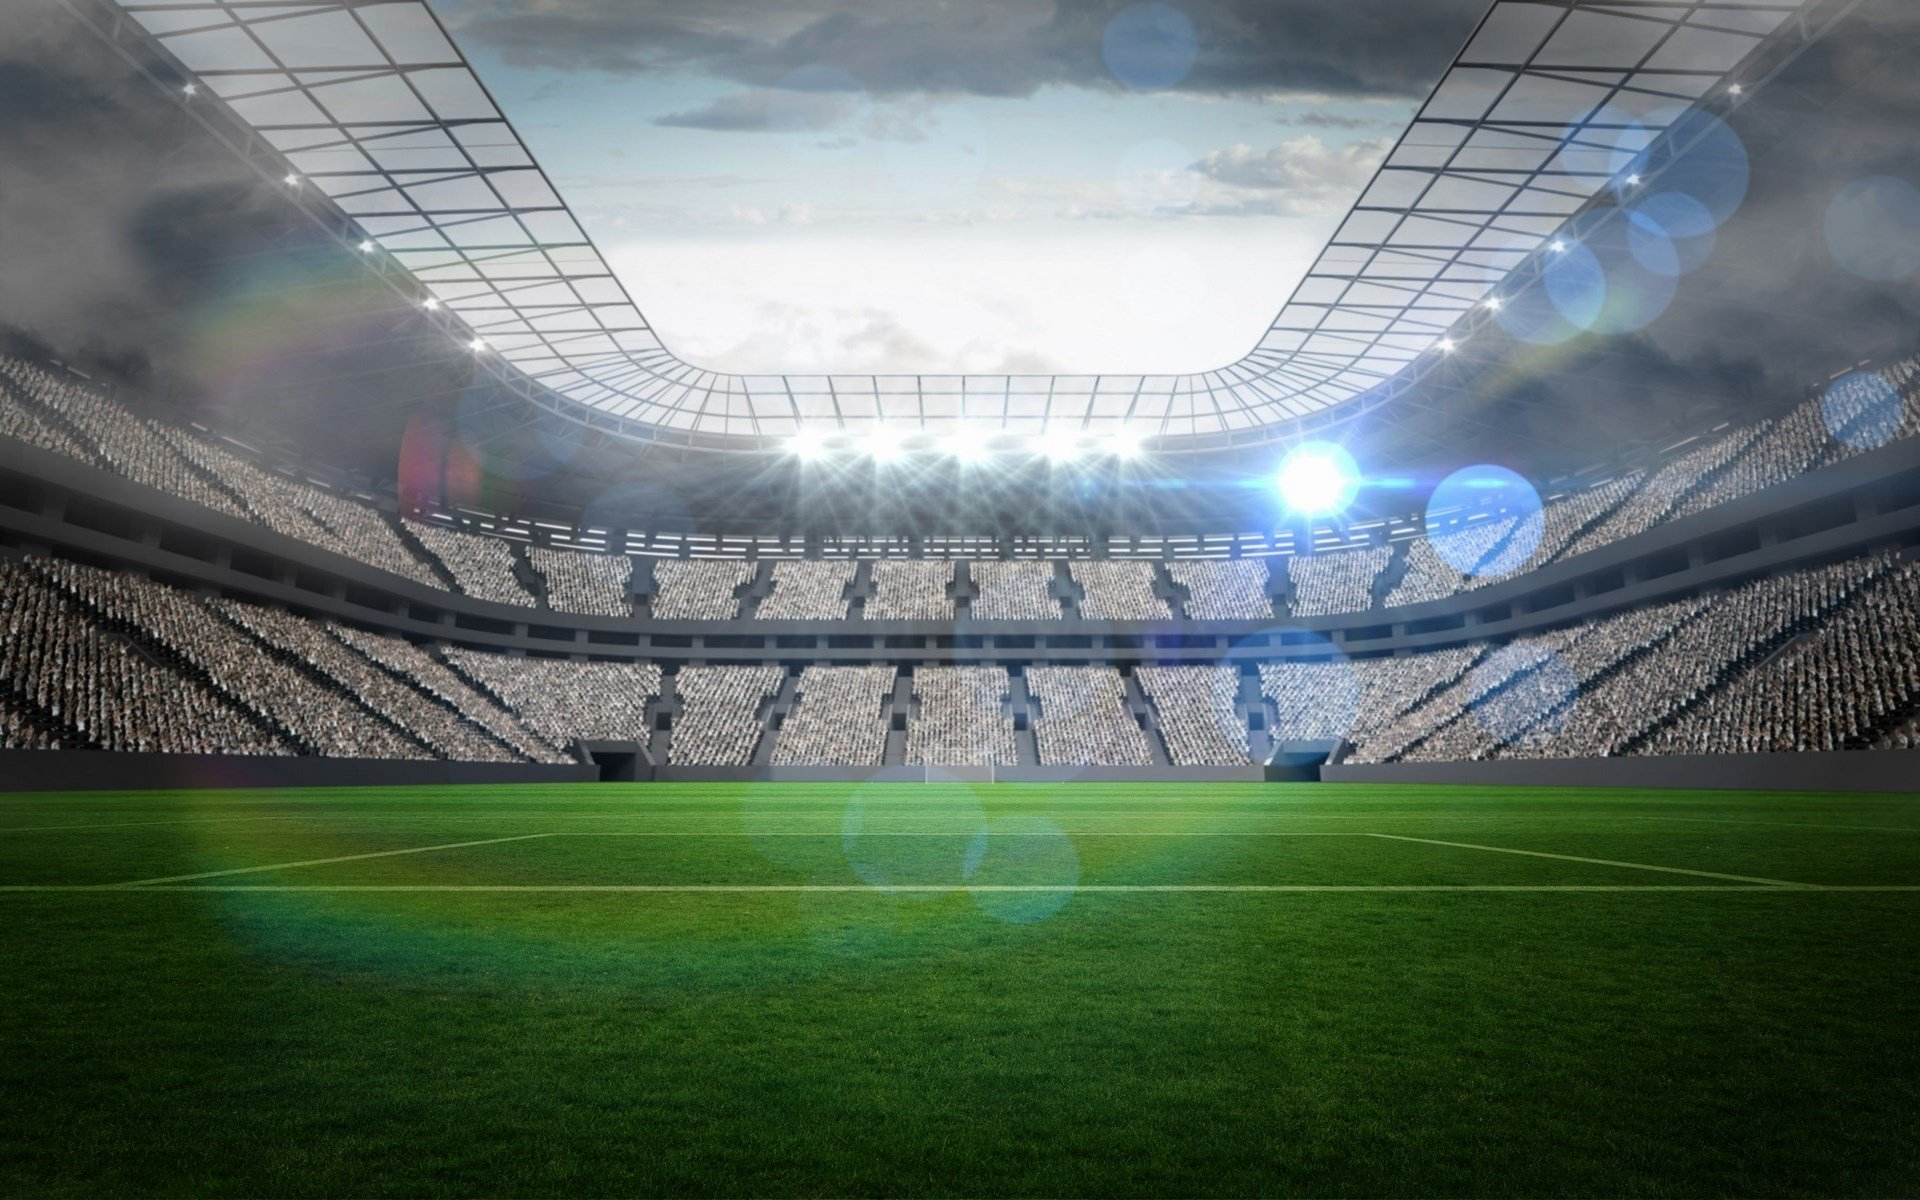 54 stadium hd wallpapers | background images - wallpaper abyss